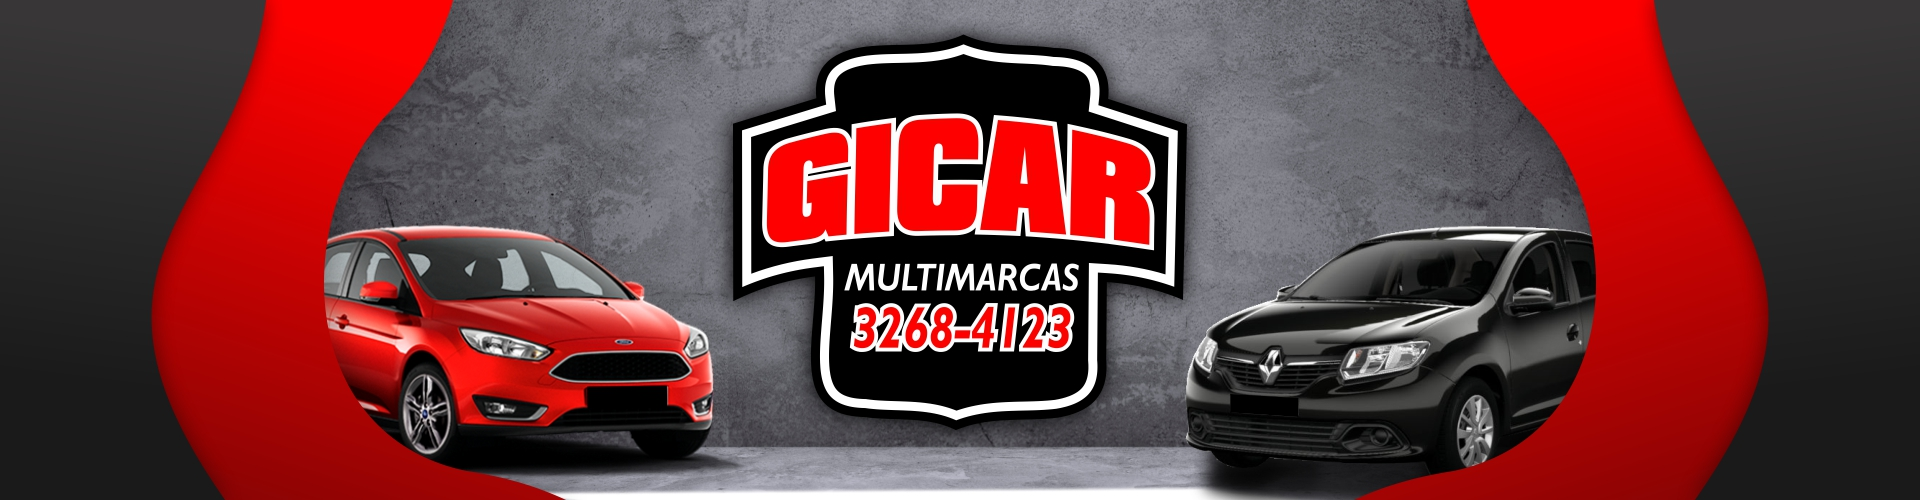 Gicar Multimarcas